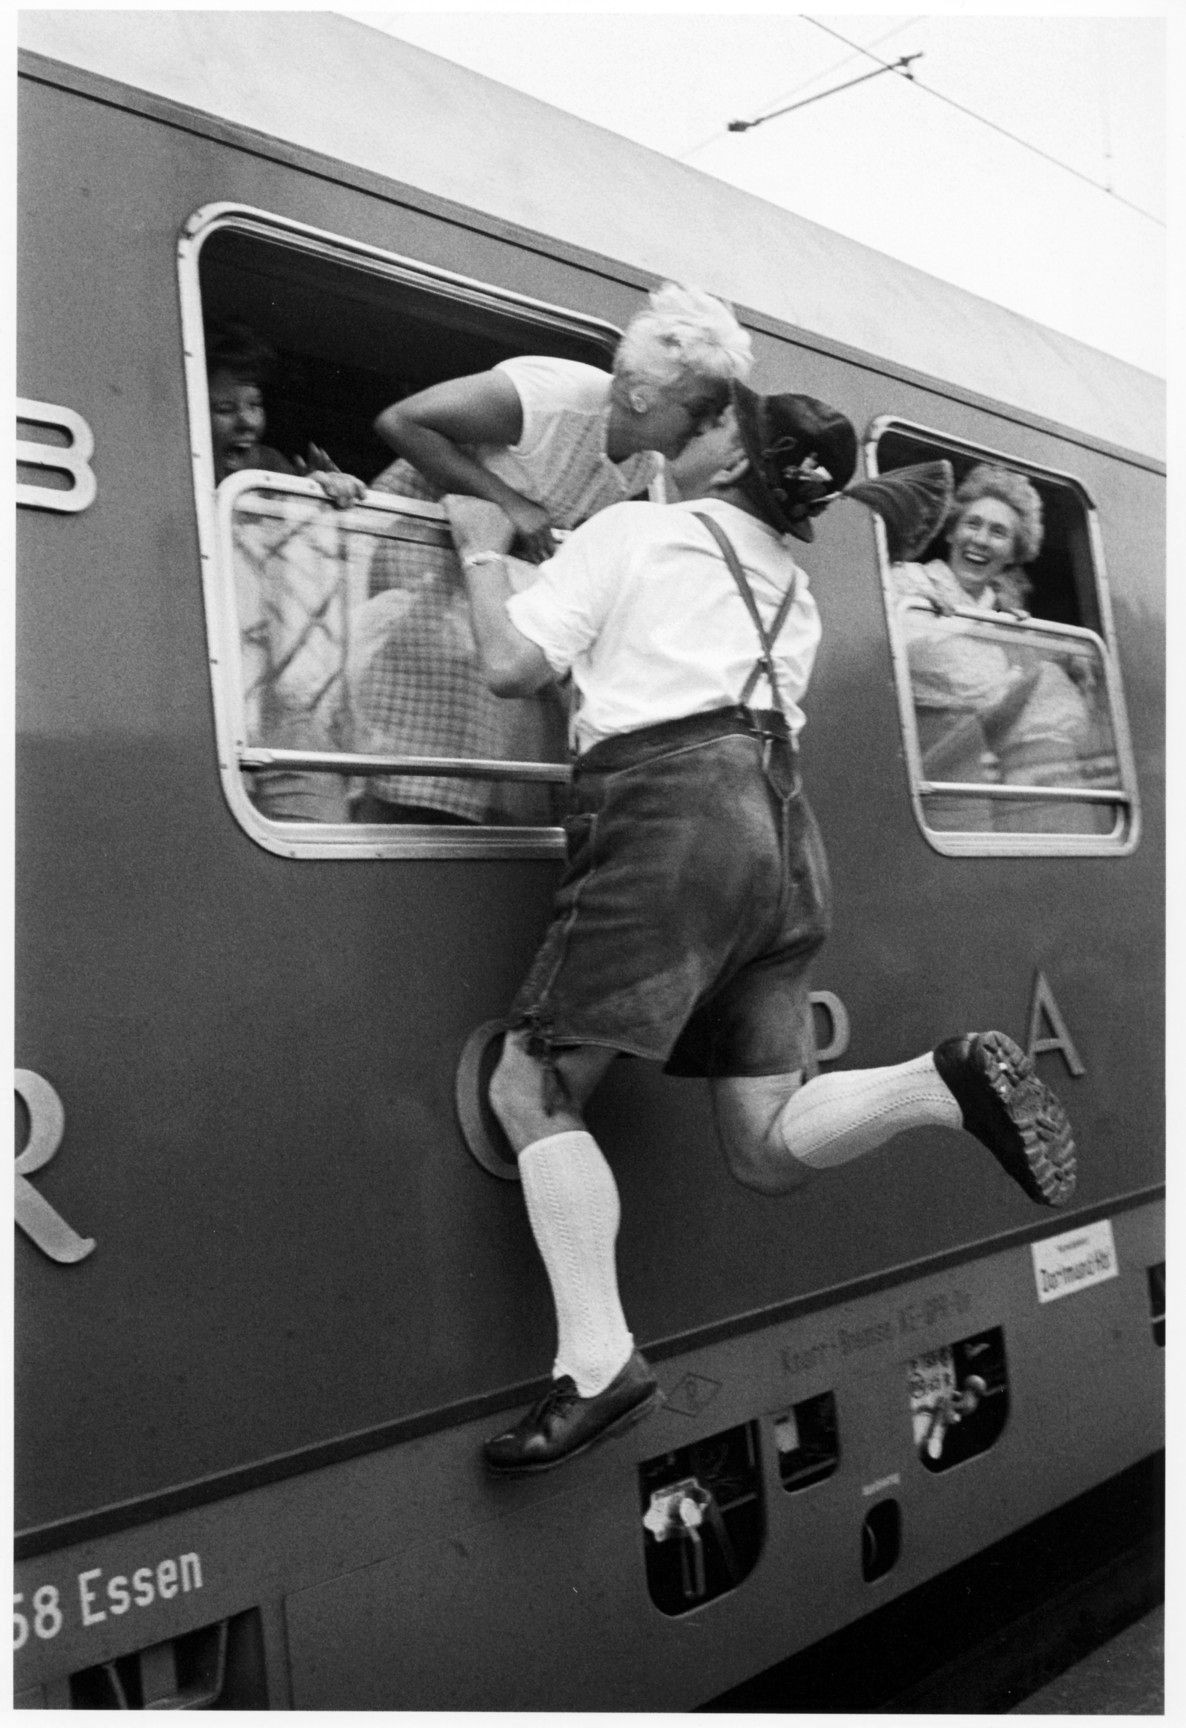 Max Scheler  Ruhpolding, Germany, 1958  http://www.faciepopuli.com/post/21865097827/max-scheler-ruhpolding-germany-1958